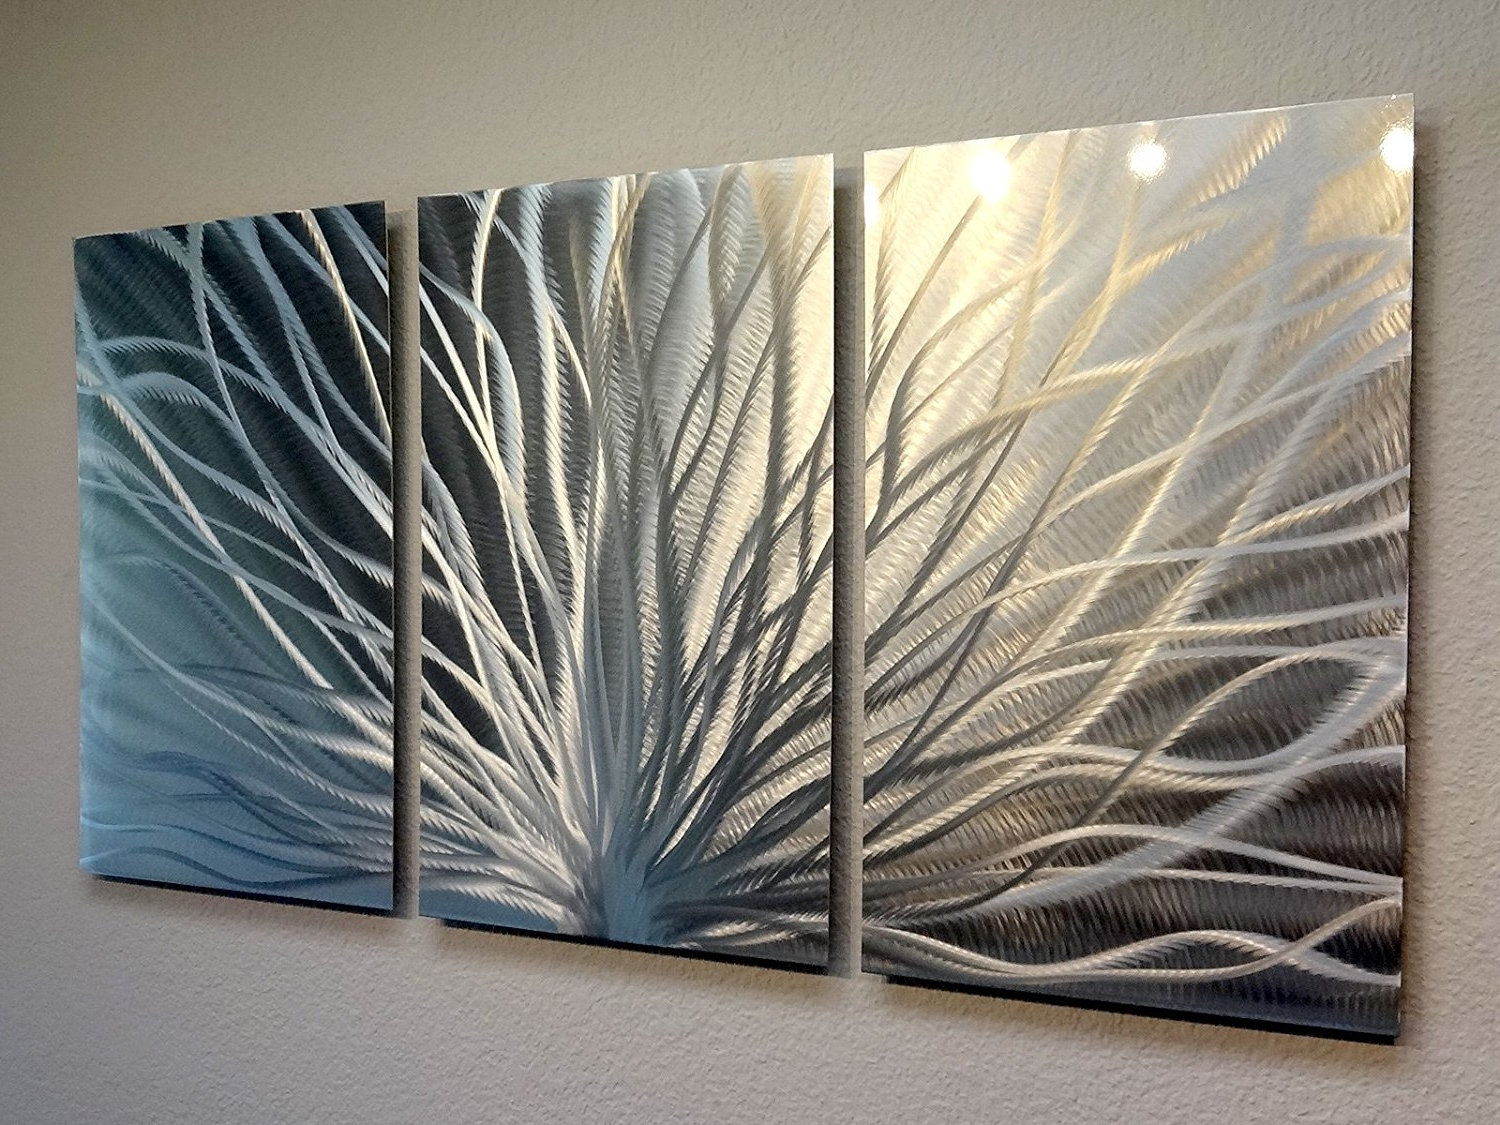 Abstract Metal Wall Art Panels Throughout Favorite Metal Wall Art, Modern Home Decor, Abstract Wall Sculpture (Gallery 8 of 15)